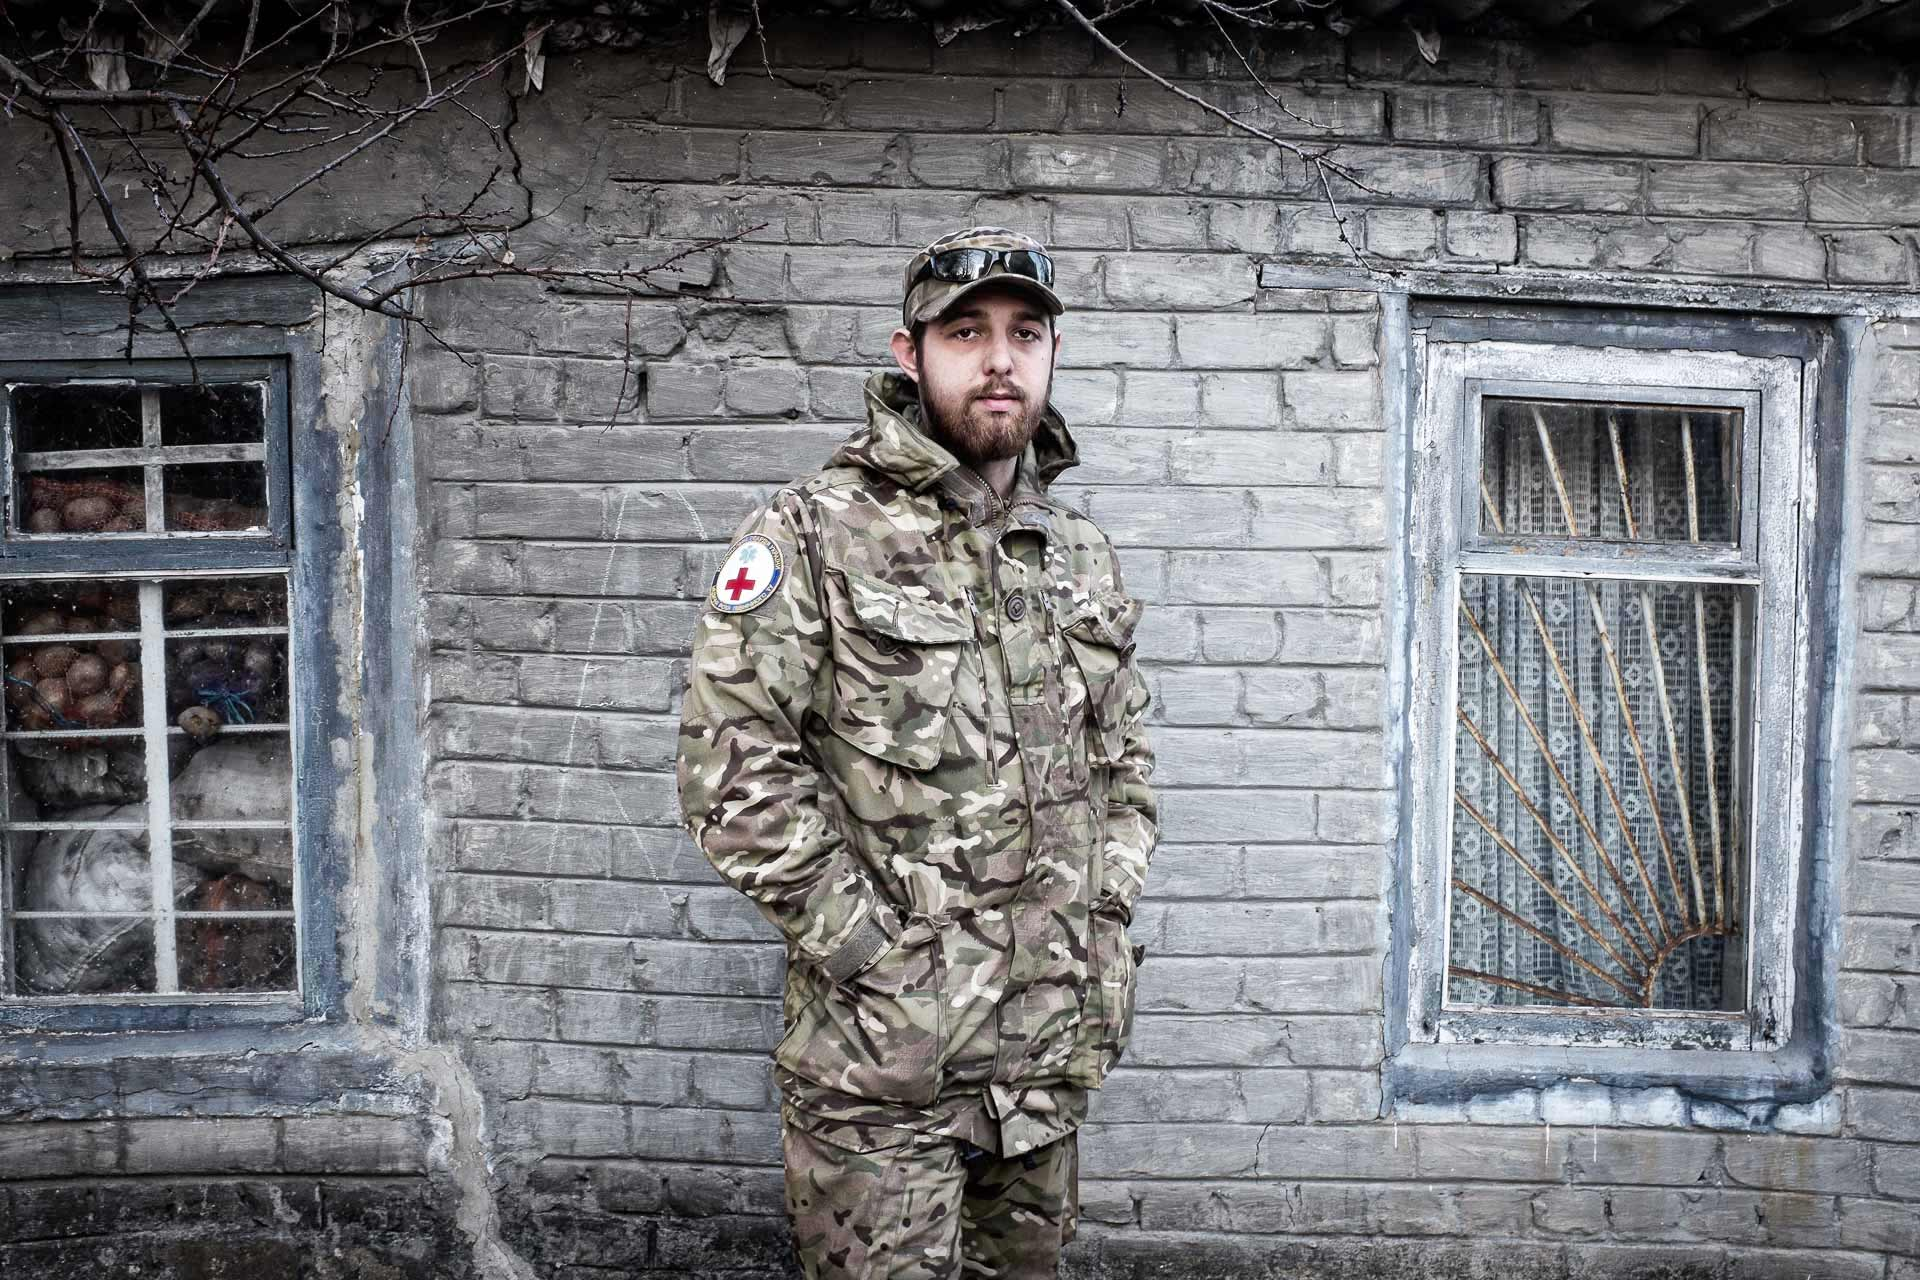 Bogdan, 20, volunteering as a soldier and aspires to enter the medical unit of military hospital. His sad look reflects the hard times he experienced in Debaltsevo a few days ago. Bakhmout - UKRAINE